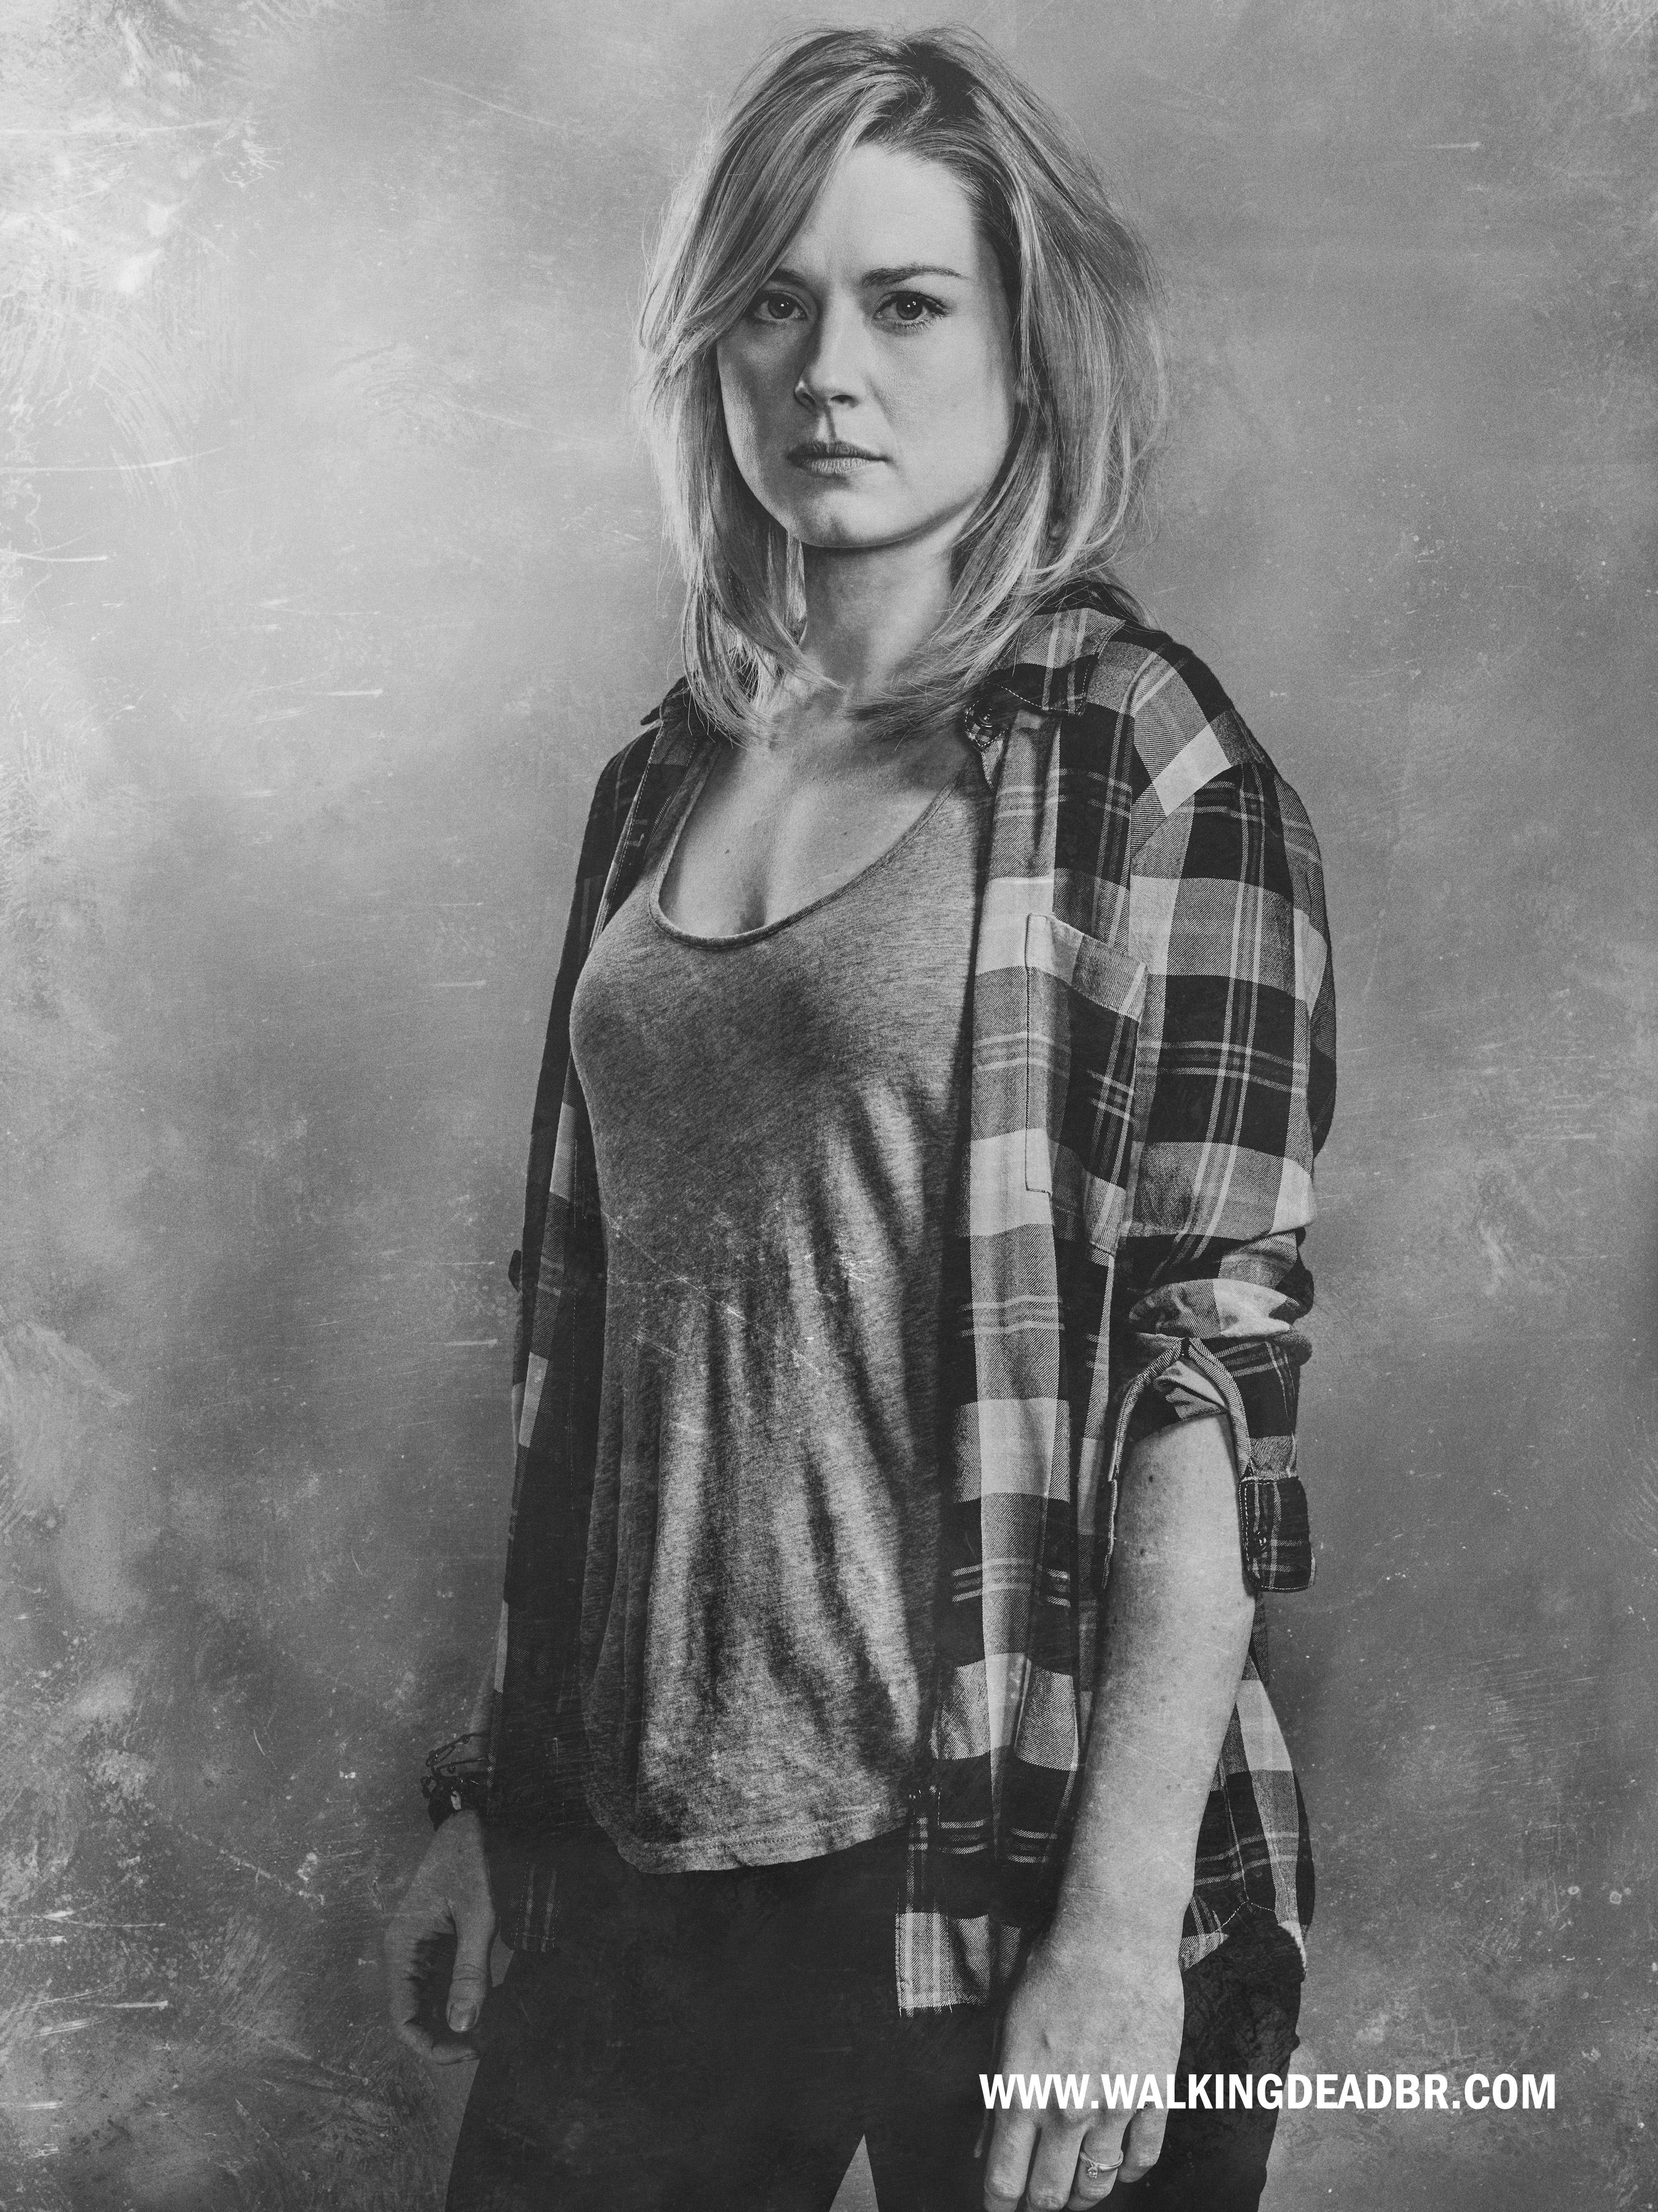 017-jessie-the-walking-dead-6-temporada-portrait